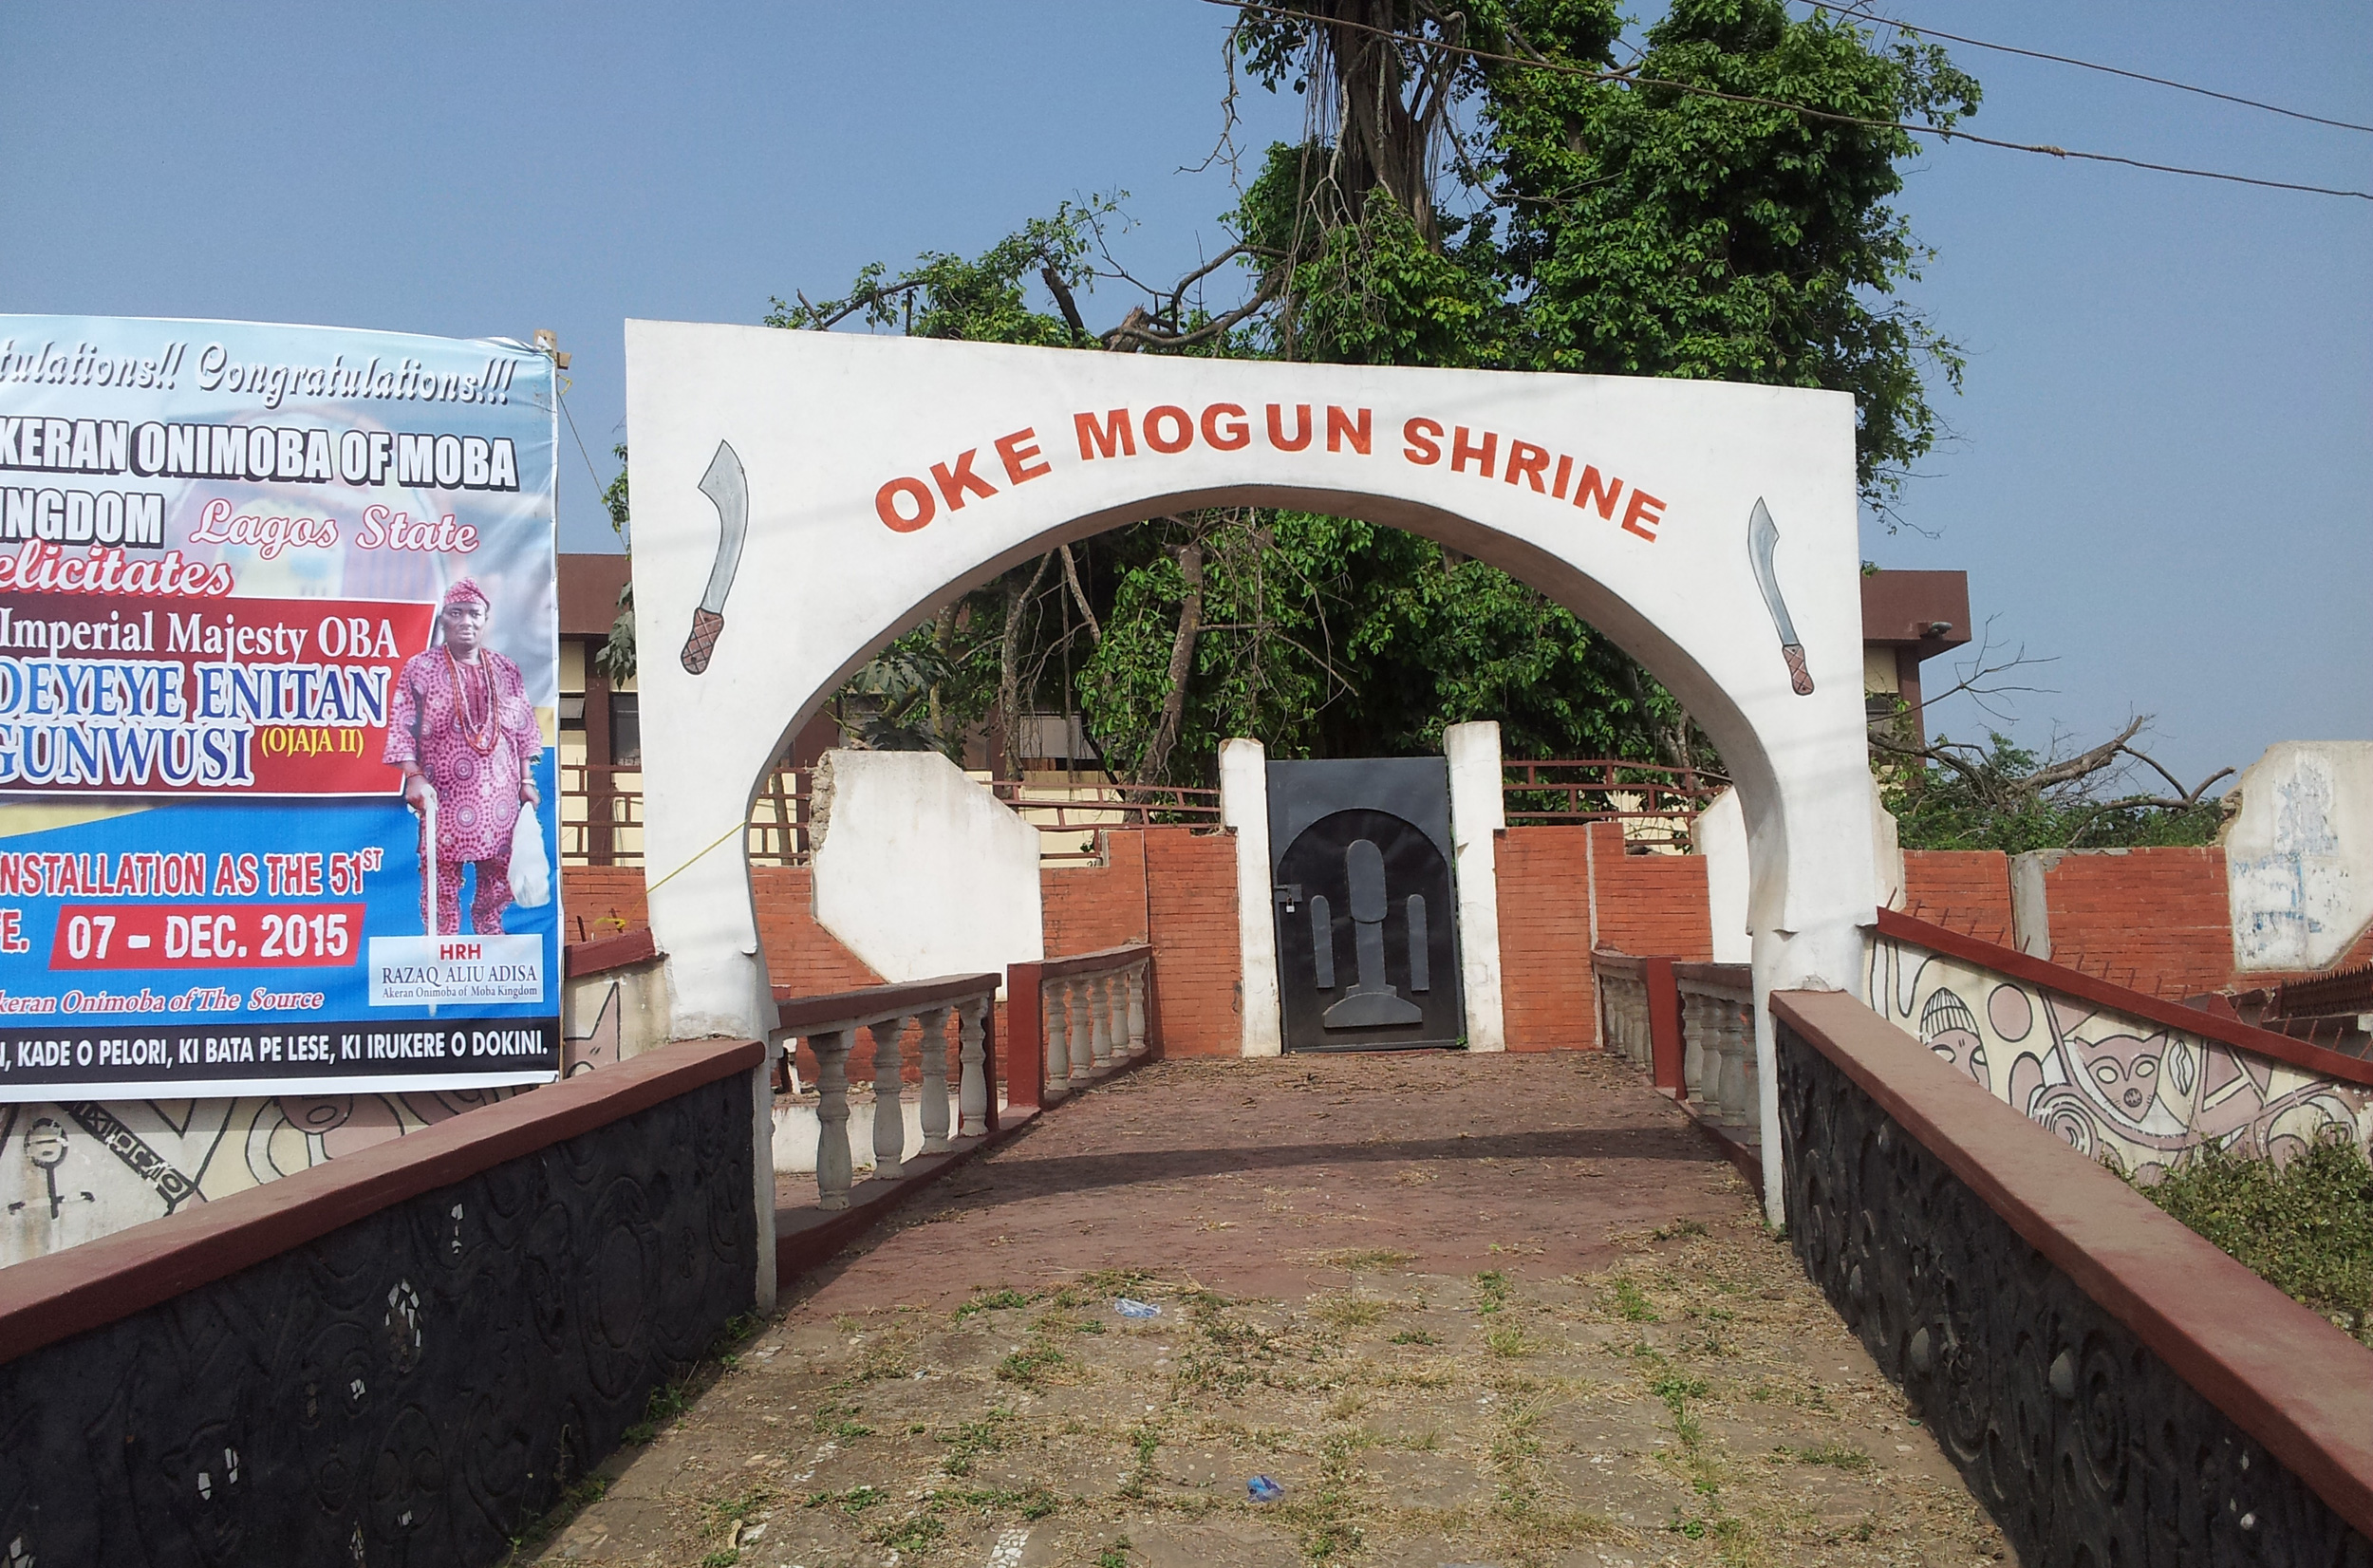 This shrine is right in the city center of Ilé-Ifẹ̀, surrounded by mosques and churches.©orishaimage.com